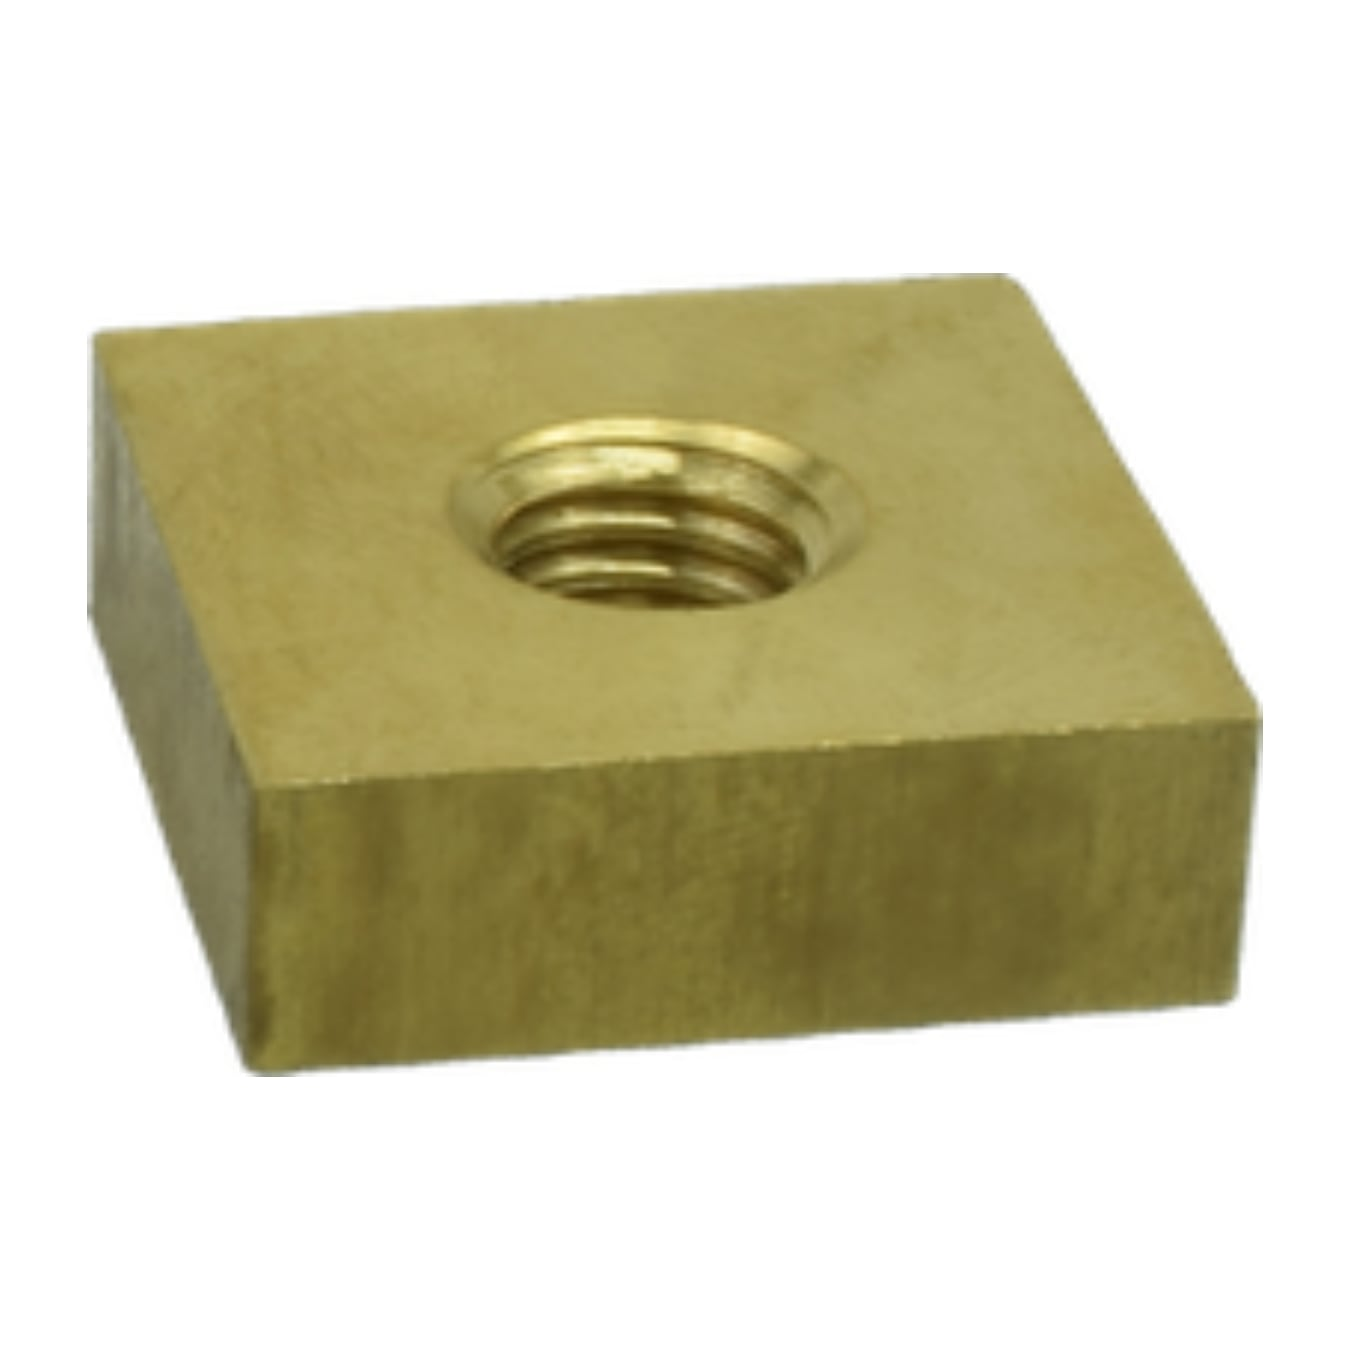 Brass Square Nut - 5G Hardware and Precast Concrete Accessories by Tengco, Inc.